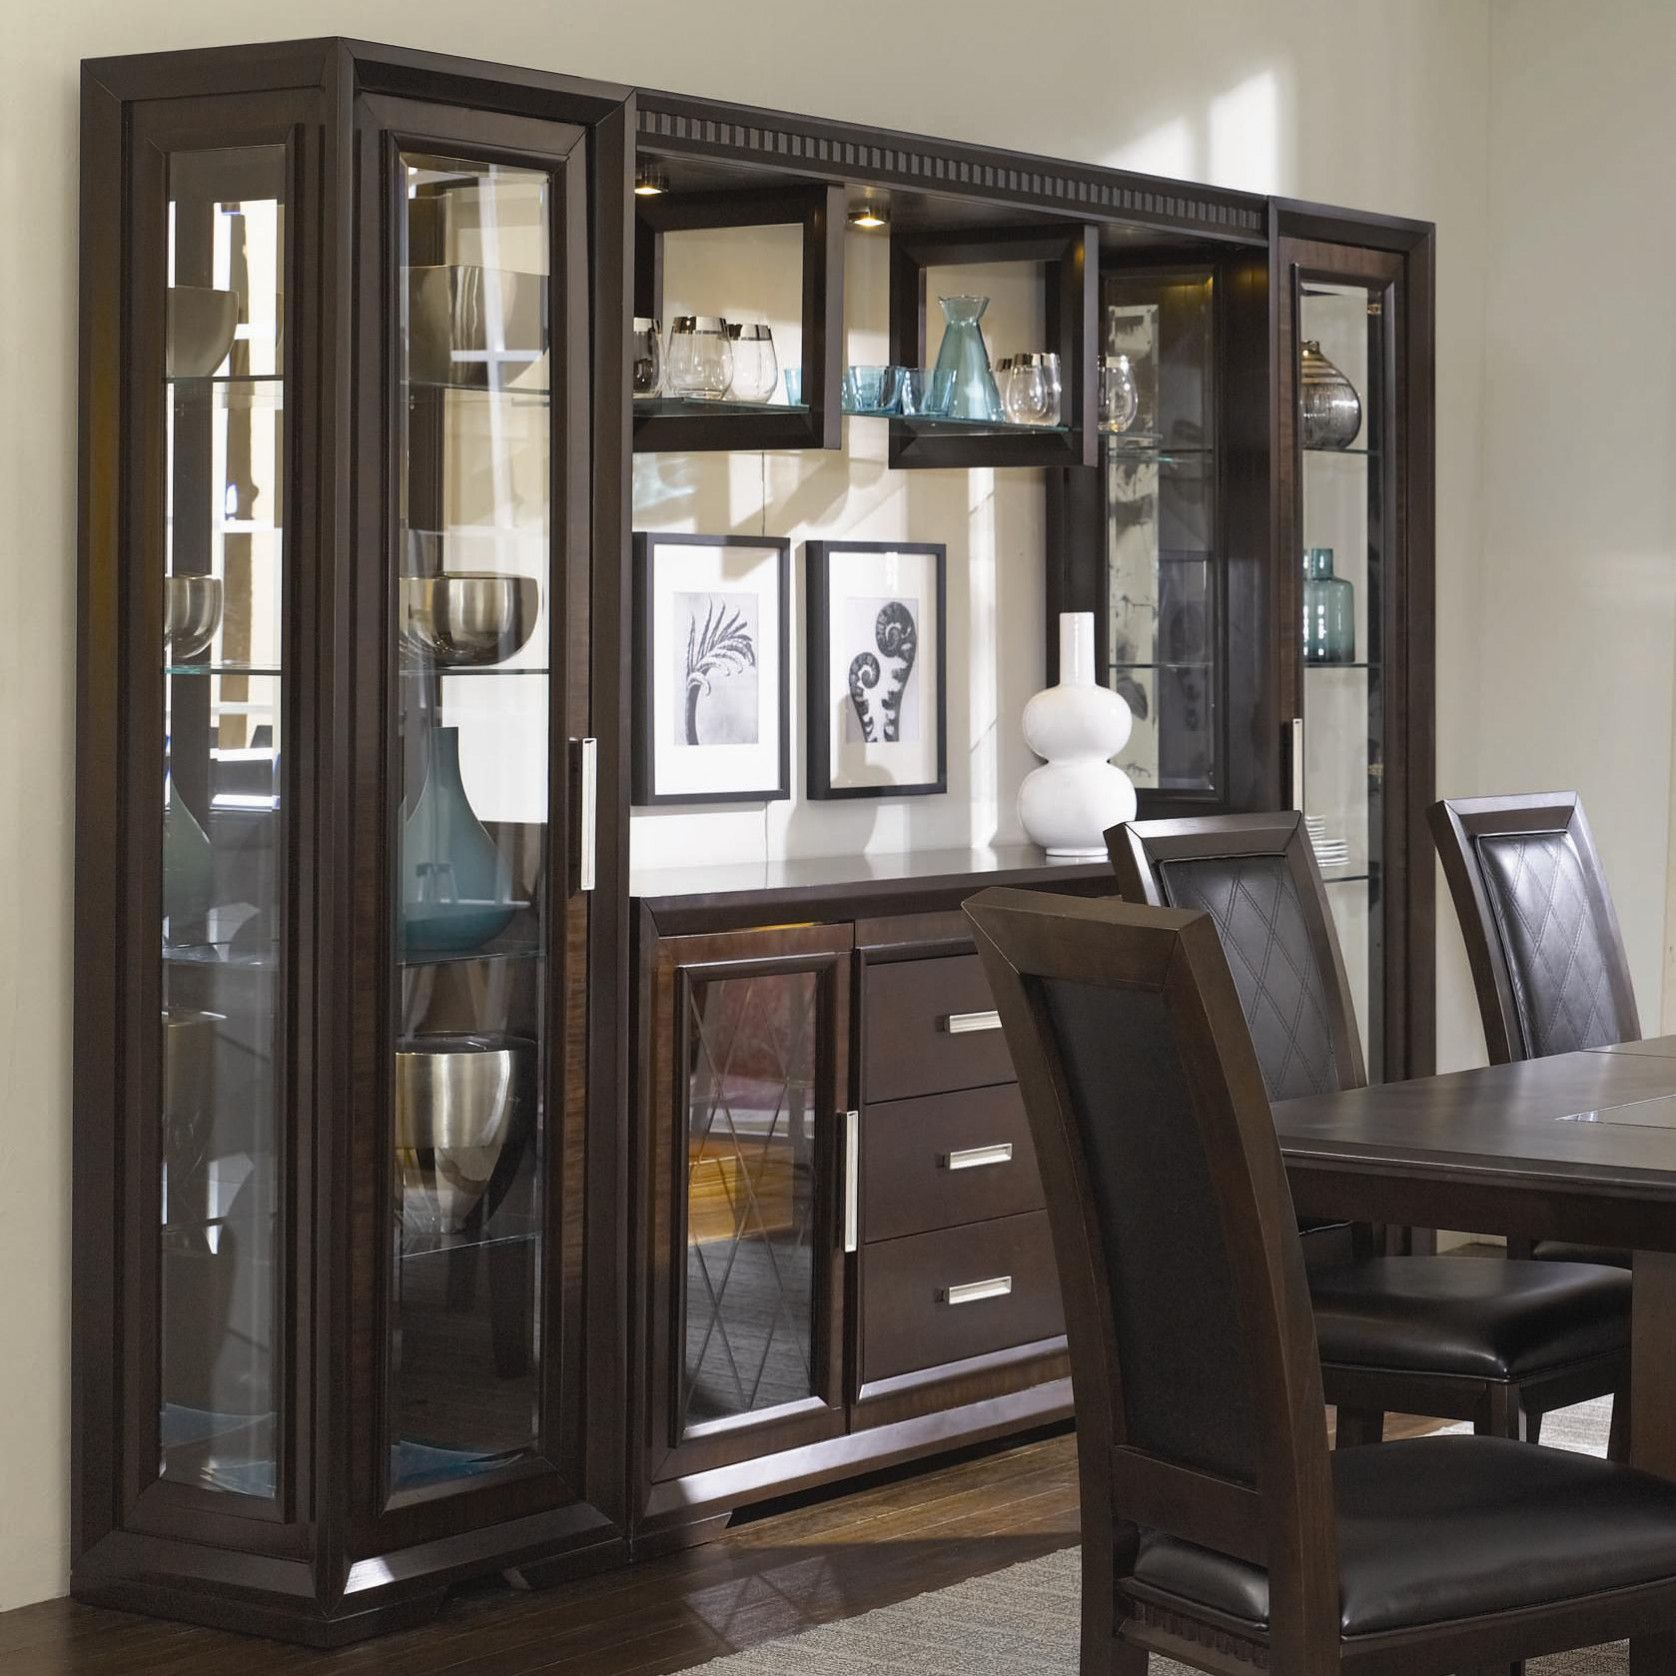 50 Modern China Cabinet Display